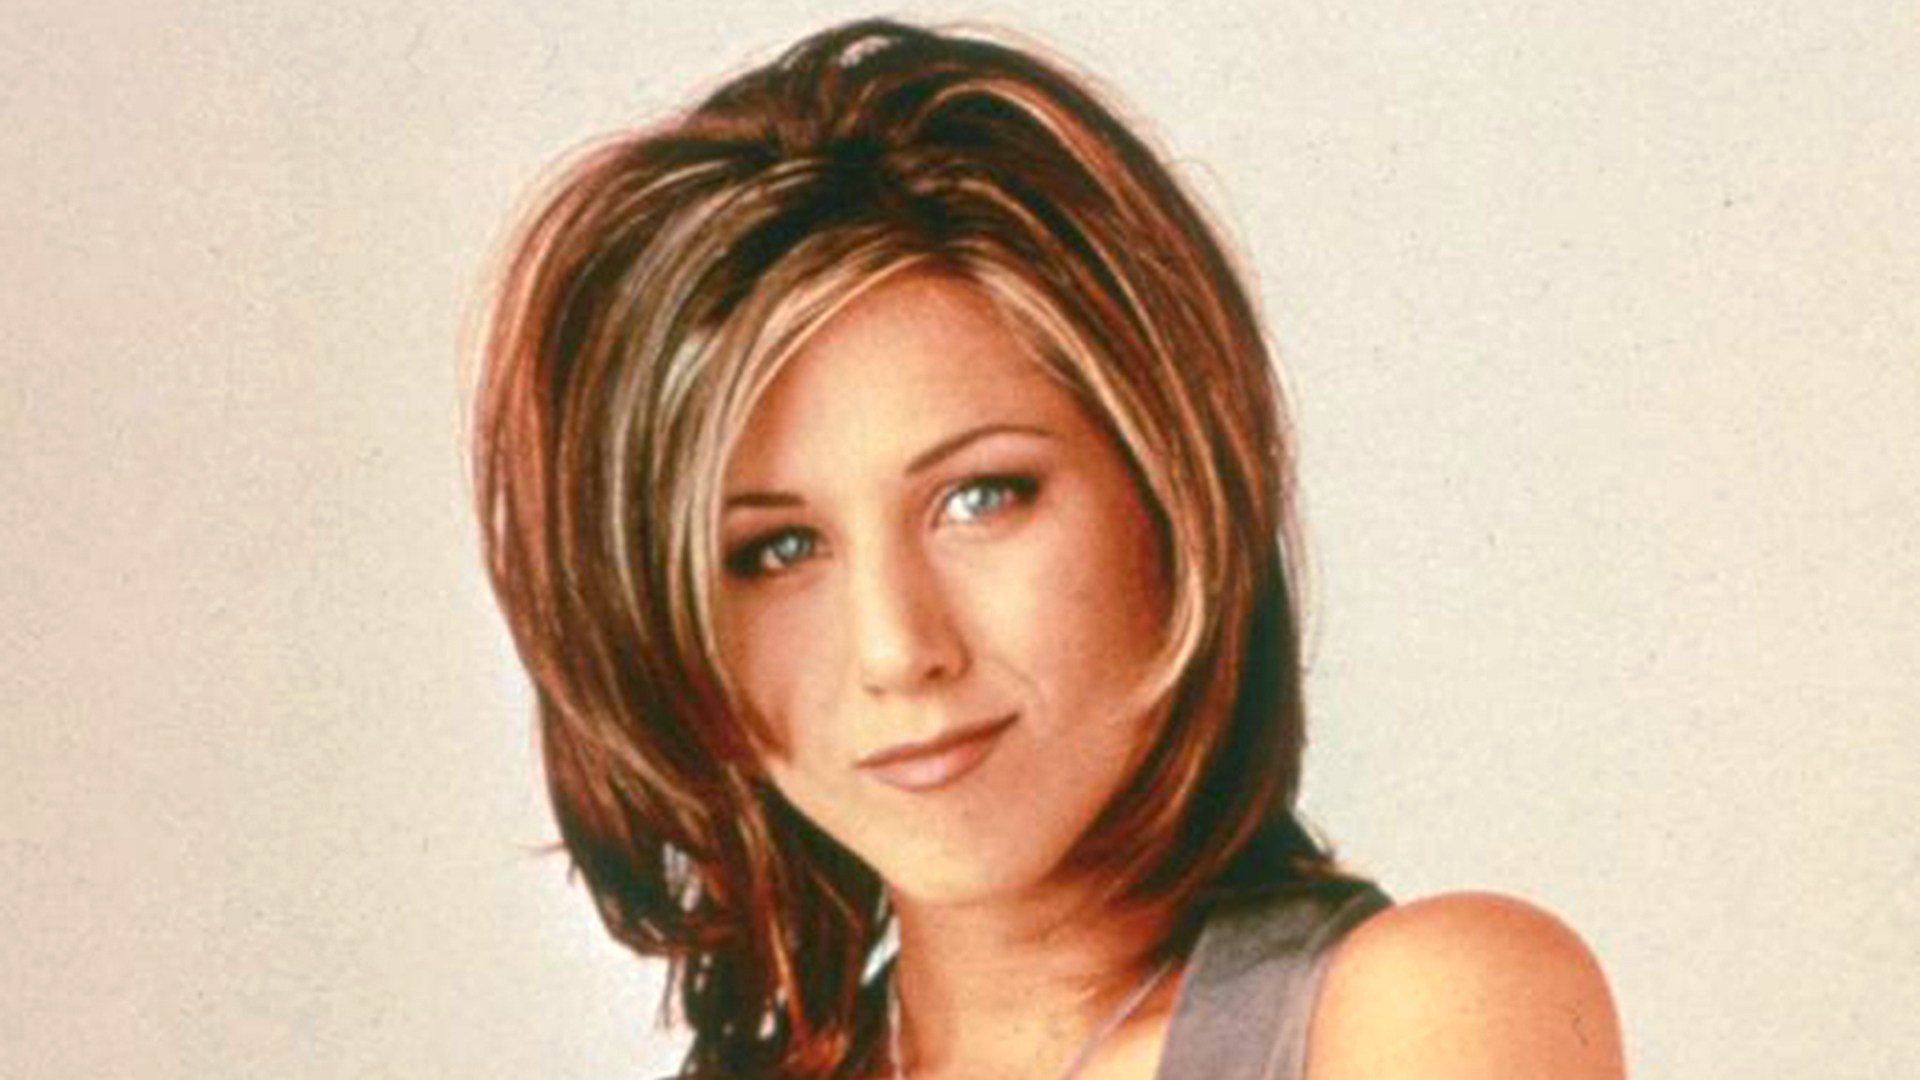 The Best Jennifer Aniston Reveals Why She Hated The Rachel Pictures